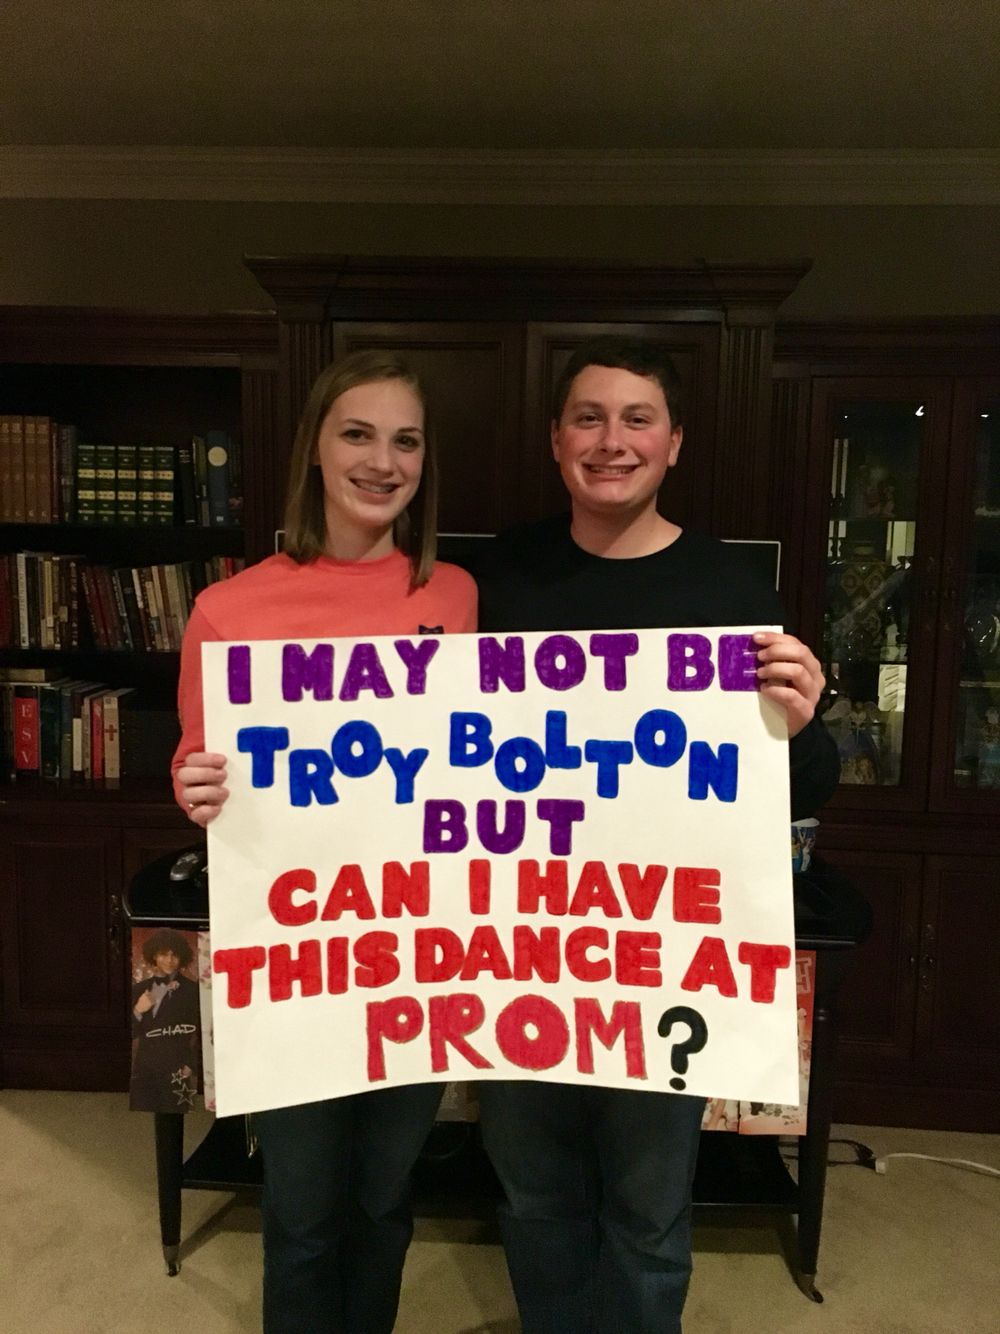 naley one tree hill promposal naley too cute one only saying yes if the sign is cuter and he dresses up like troy and sings a song liv